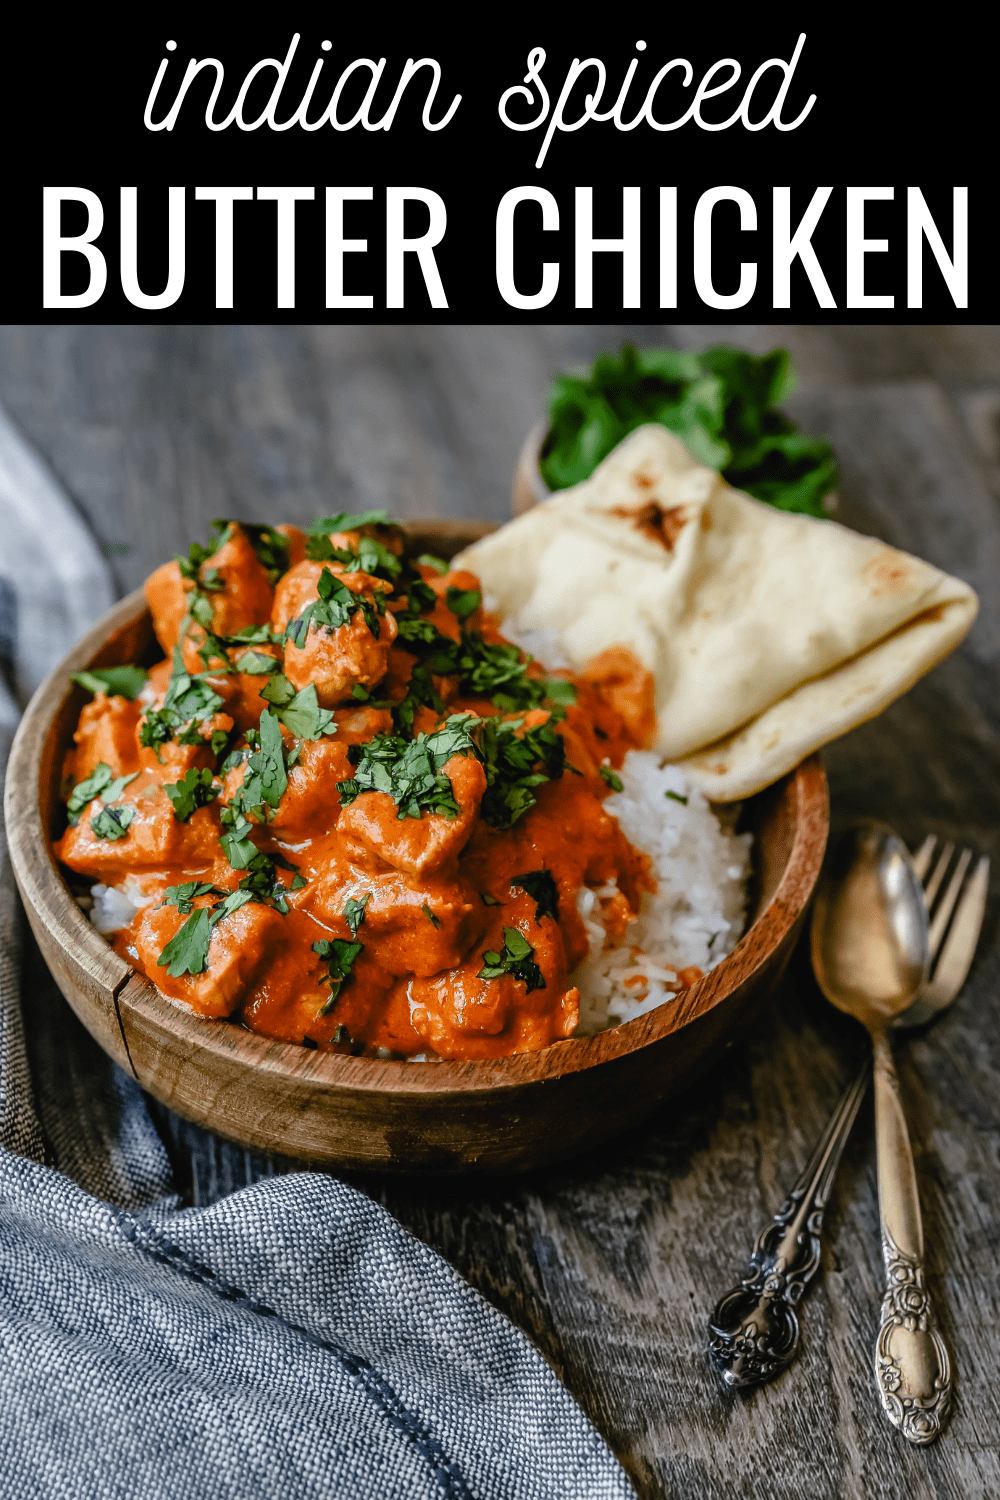 Indian Butter Chicken A popular Indian dish made with tender chicken simmered in a rich, Indian spiced tomato cream sauce. The Best Indian Butter Chicken Recipe! #indianfood #butterchicken